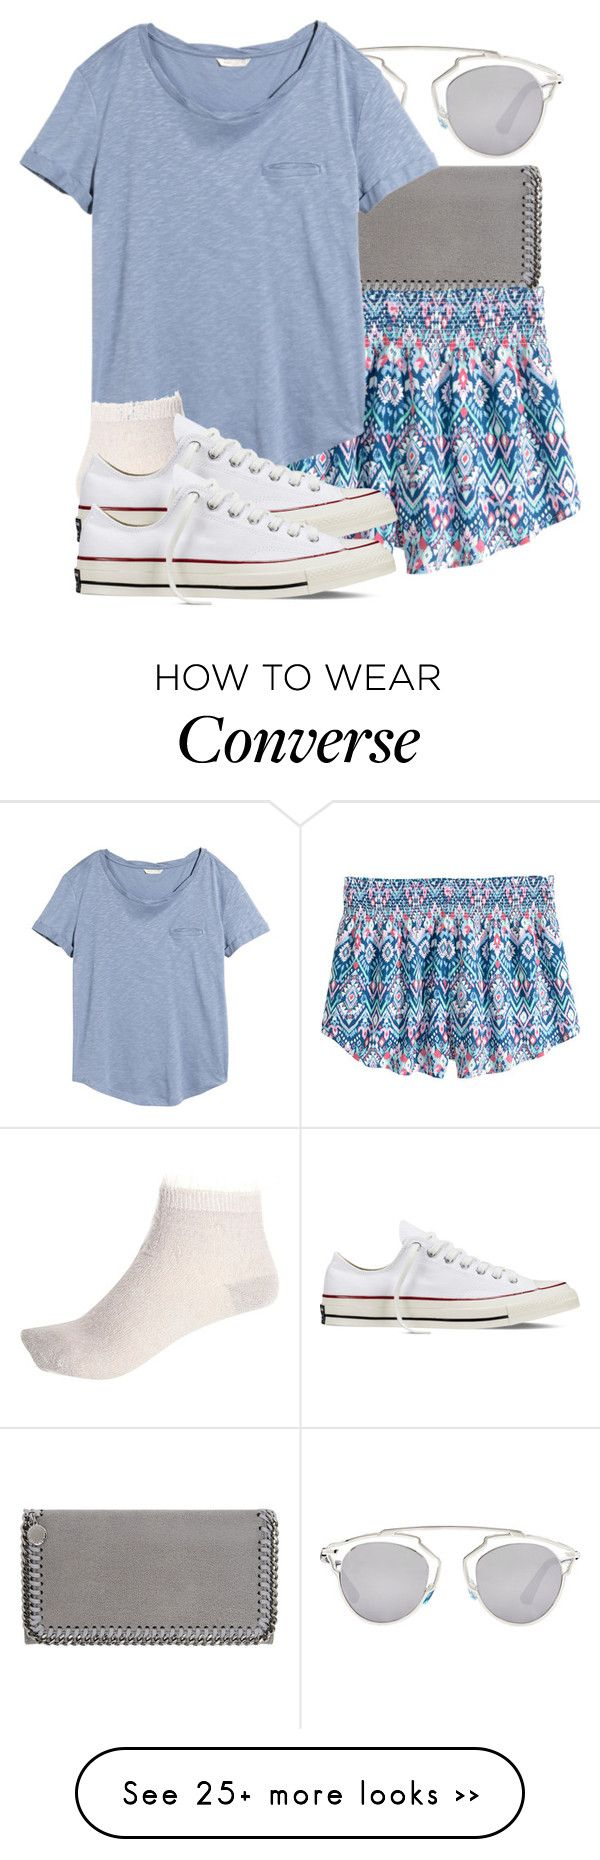 """""""Untitled #503"""" by triskid on Polyvore featuring STELLA McCARTNEY, Christian Dior, H&M, River Island and Converse"""